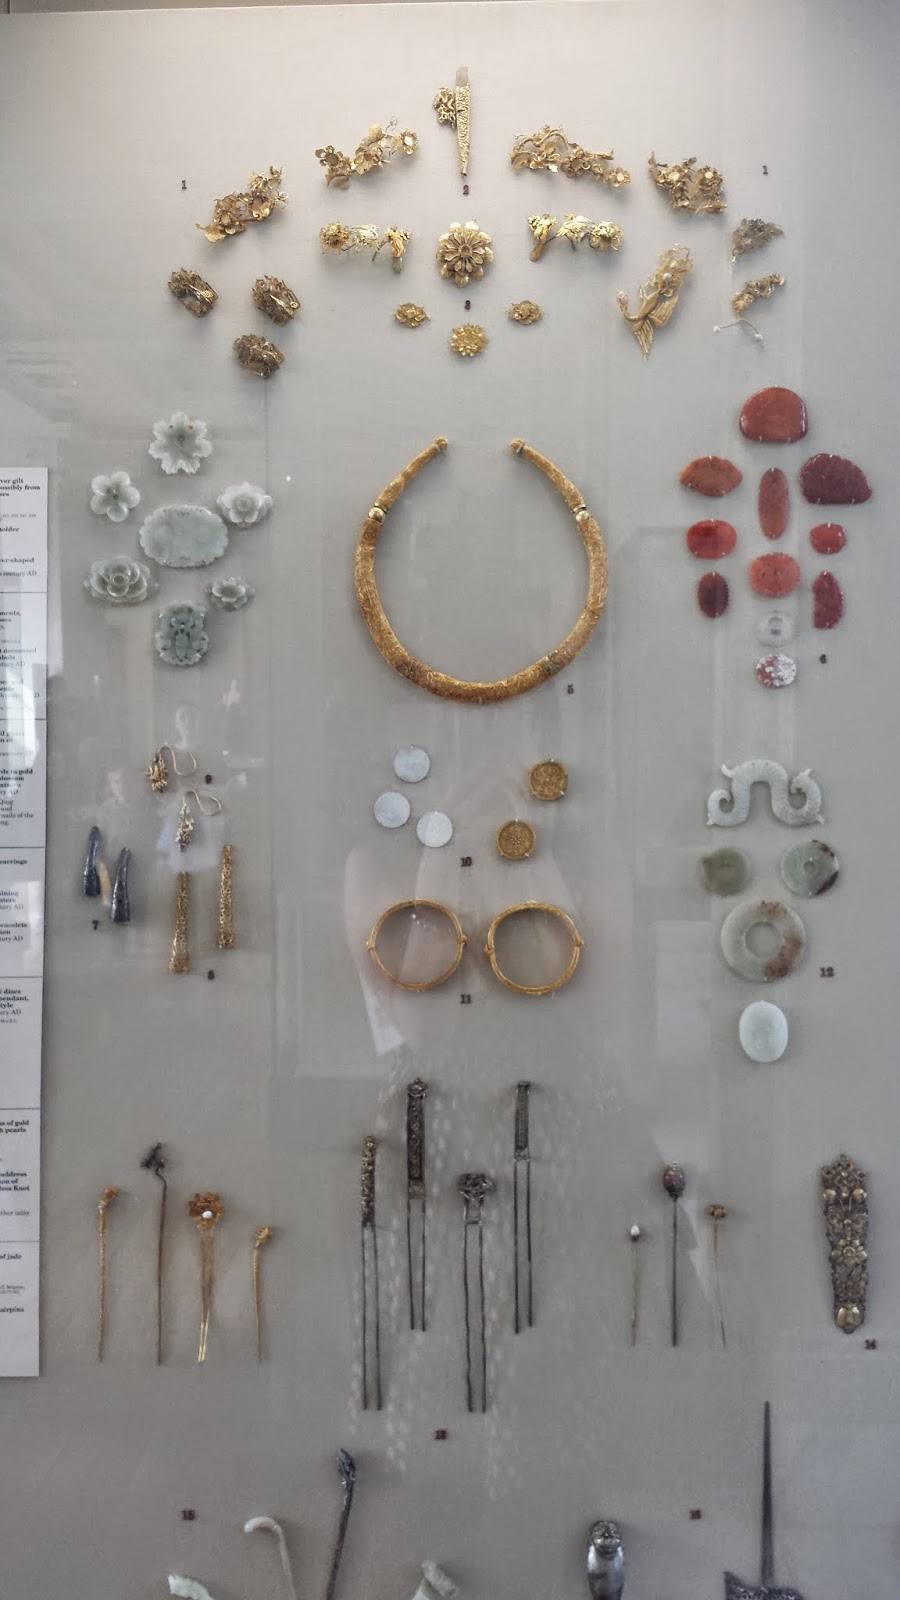 Jewelry likely worn by noblewomen in ancient China